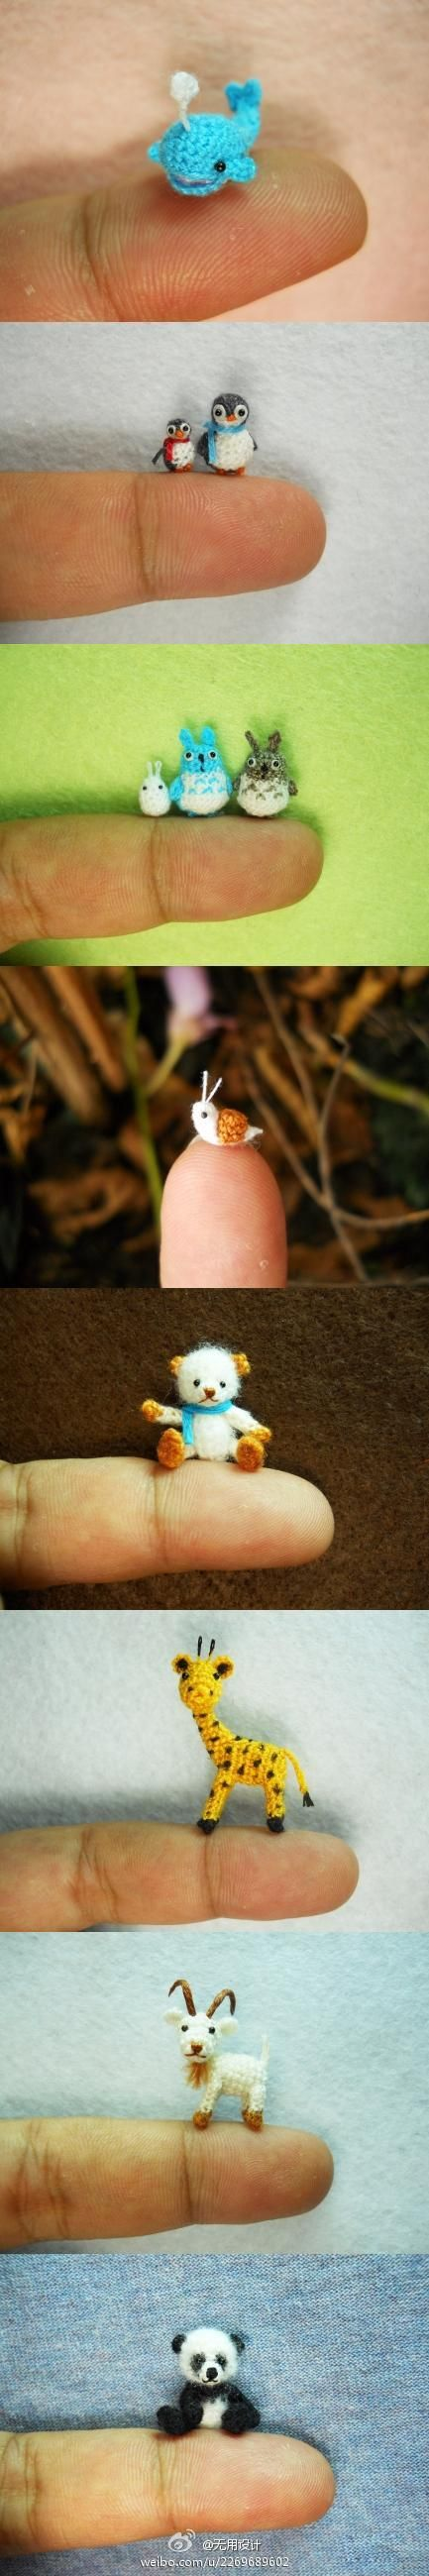 Itty bitty kawaii..., this is crazy amazing. I don't know I could do it this small.